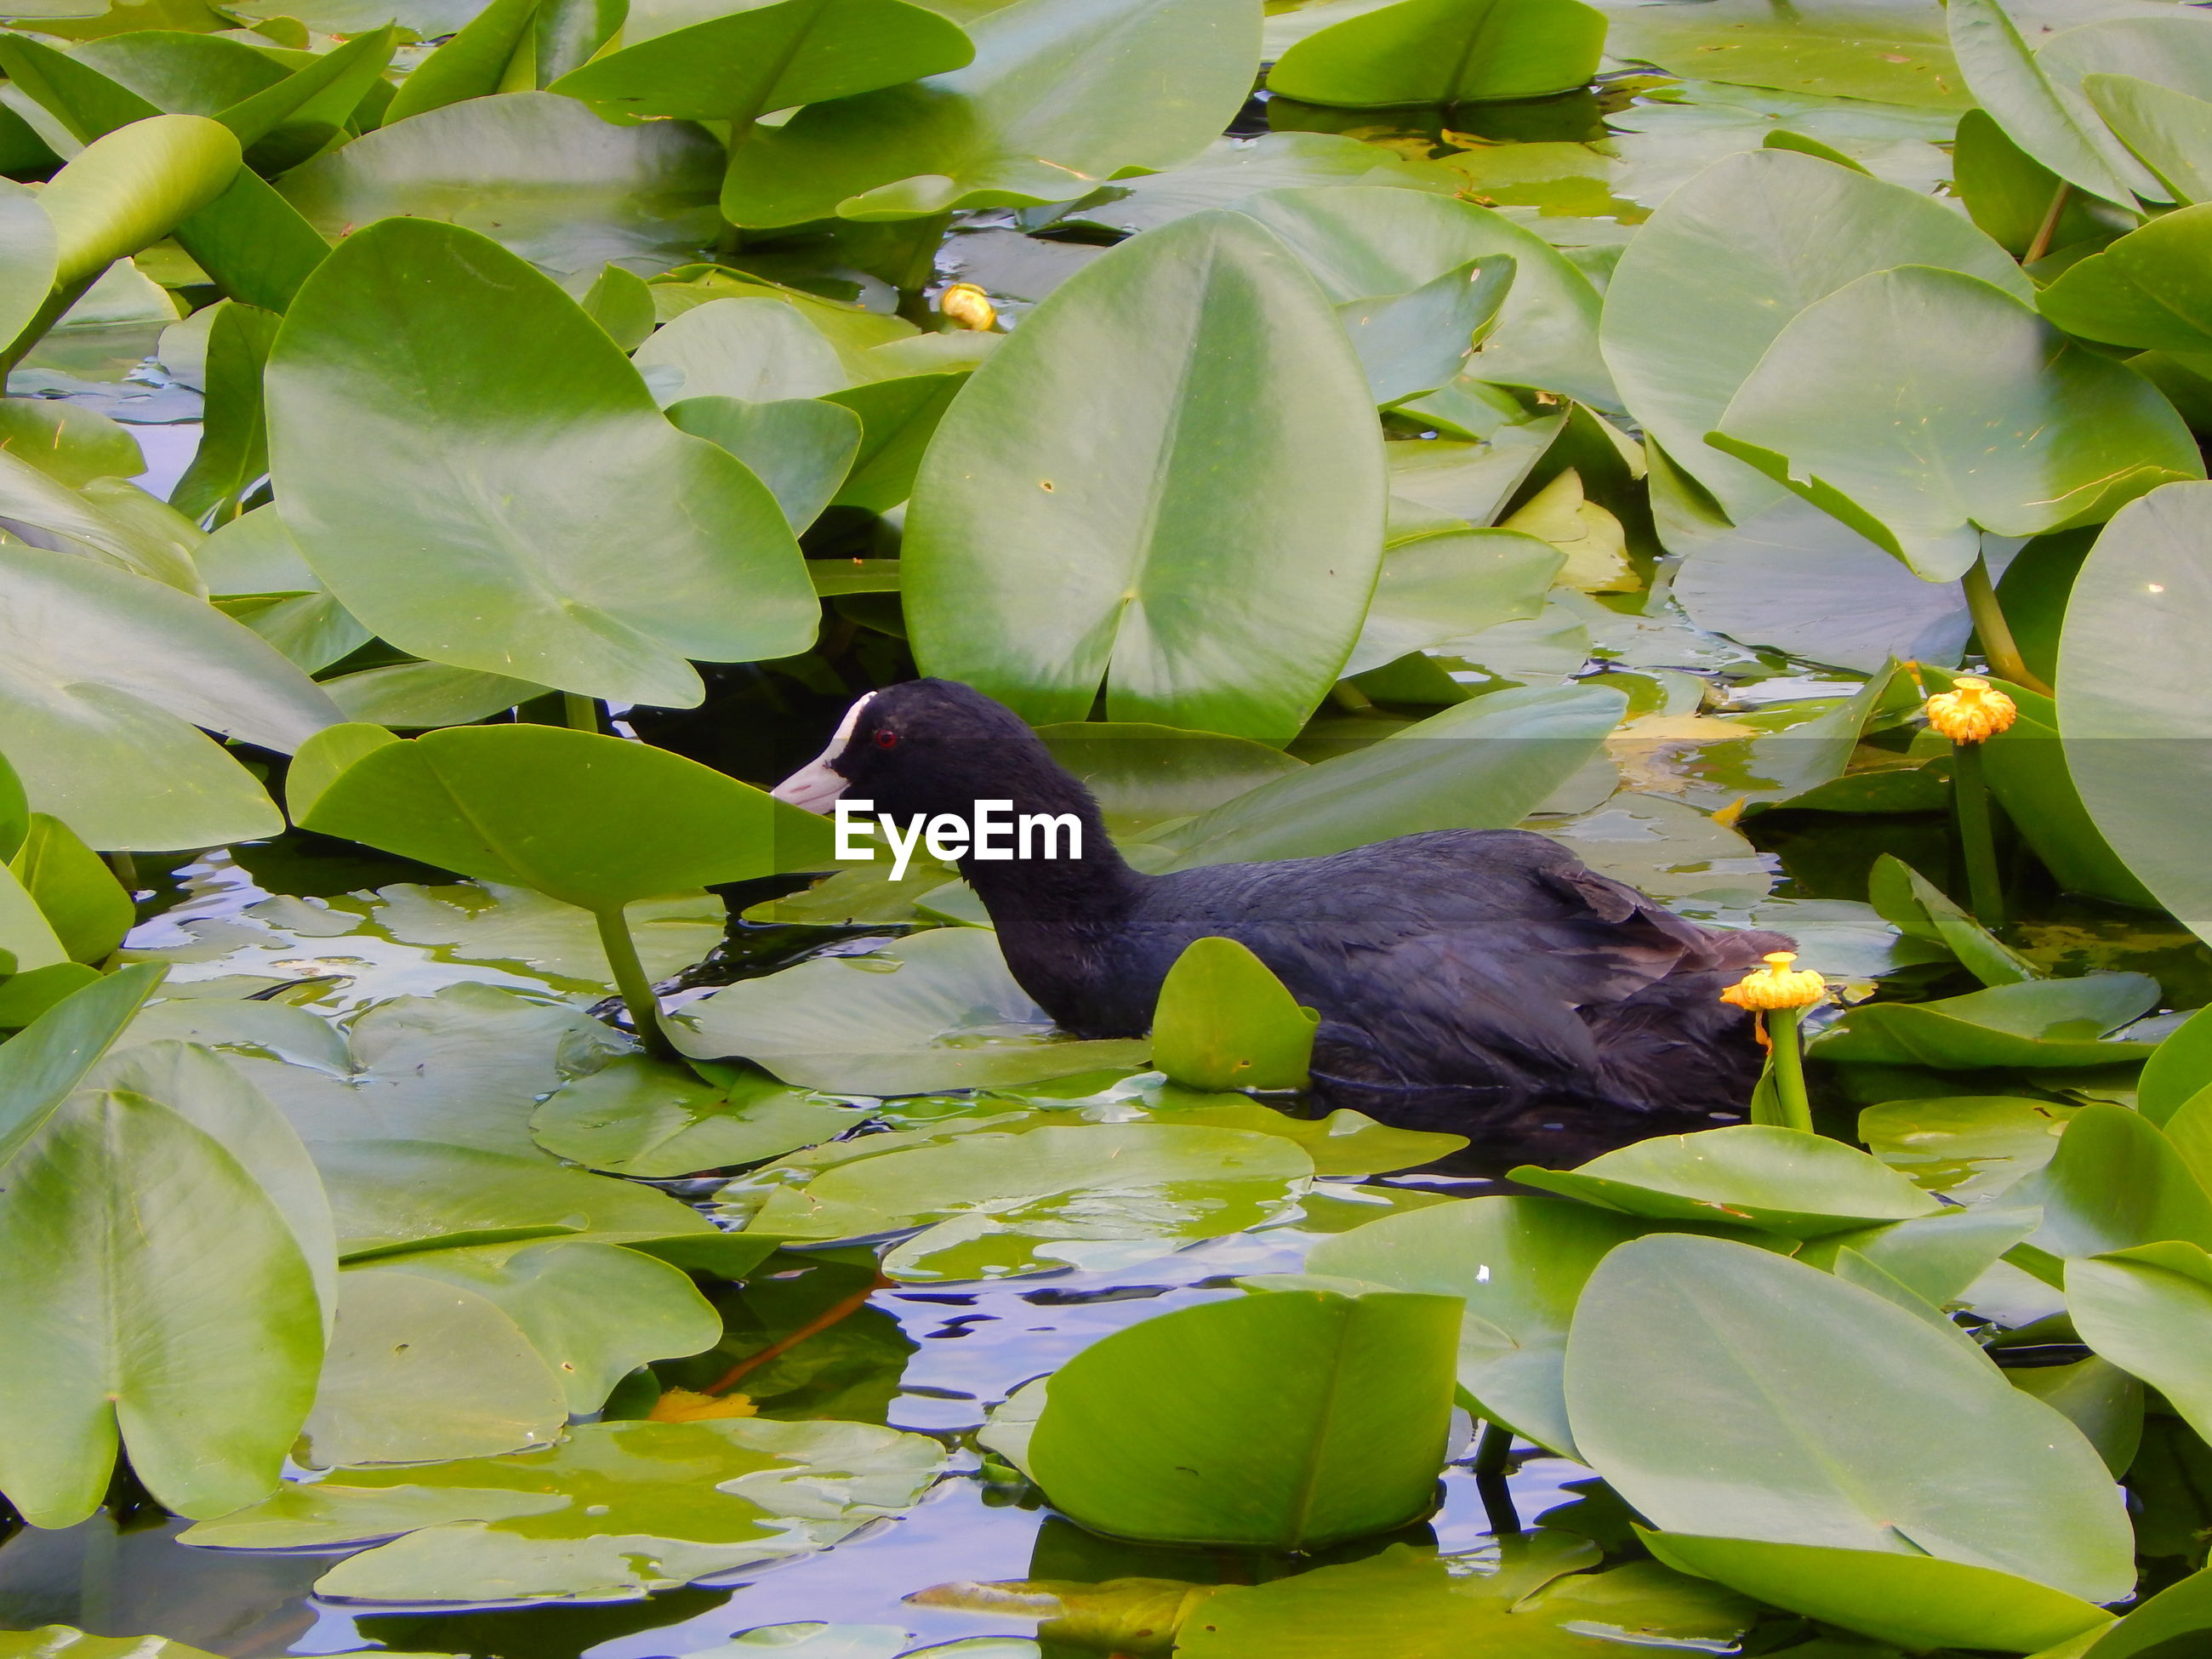 Coot amidst leaves in pond